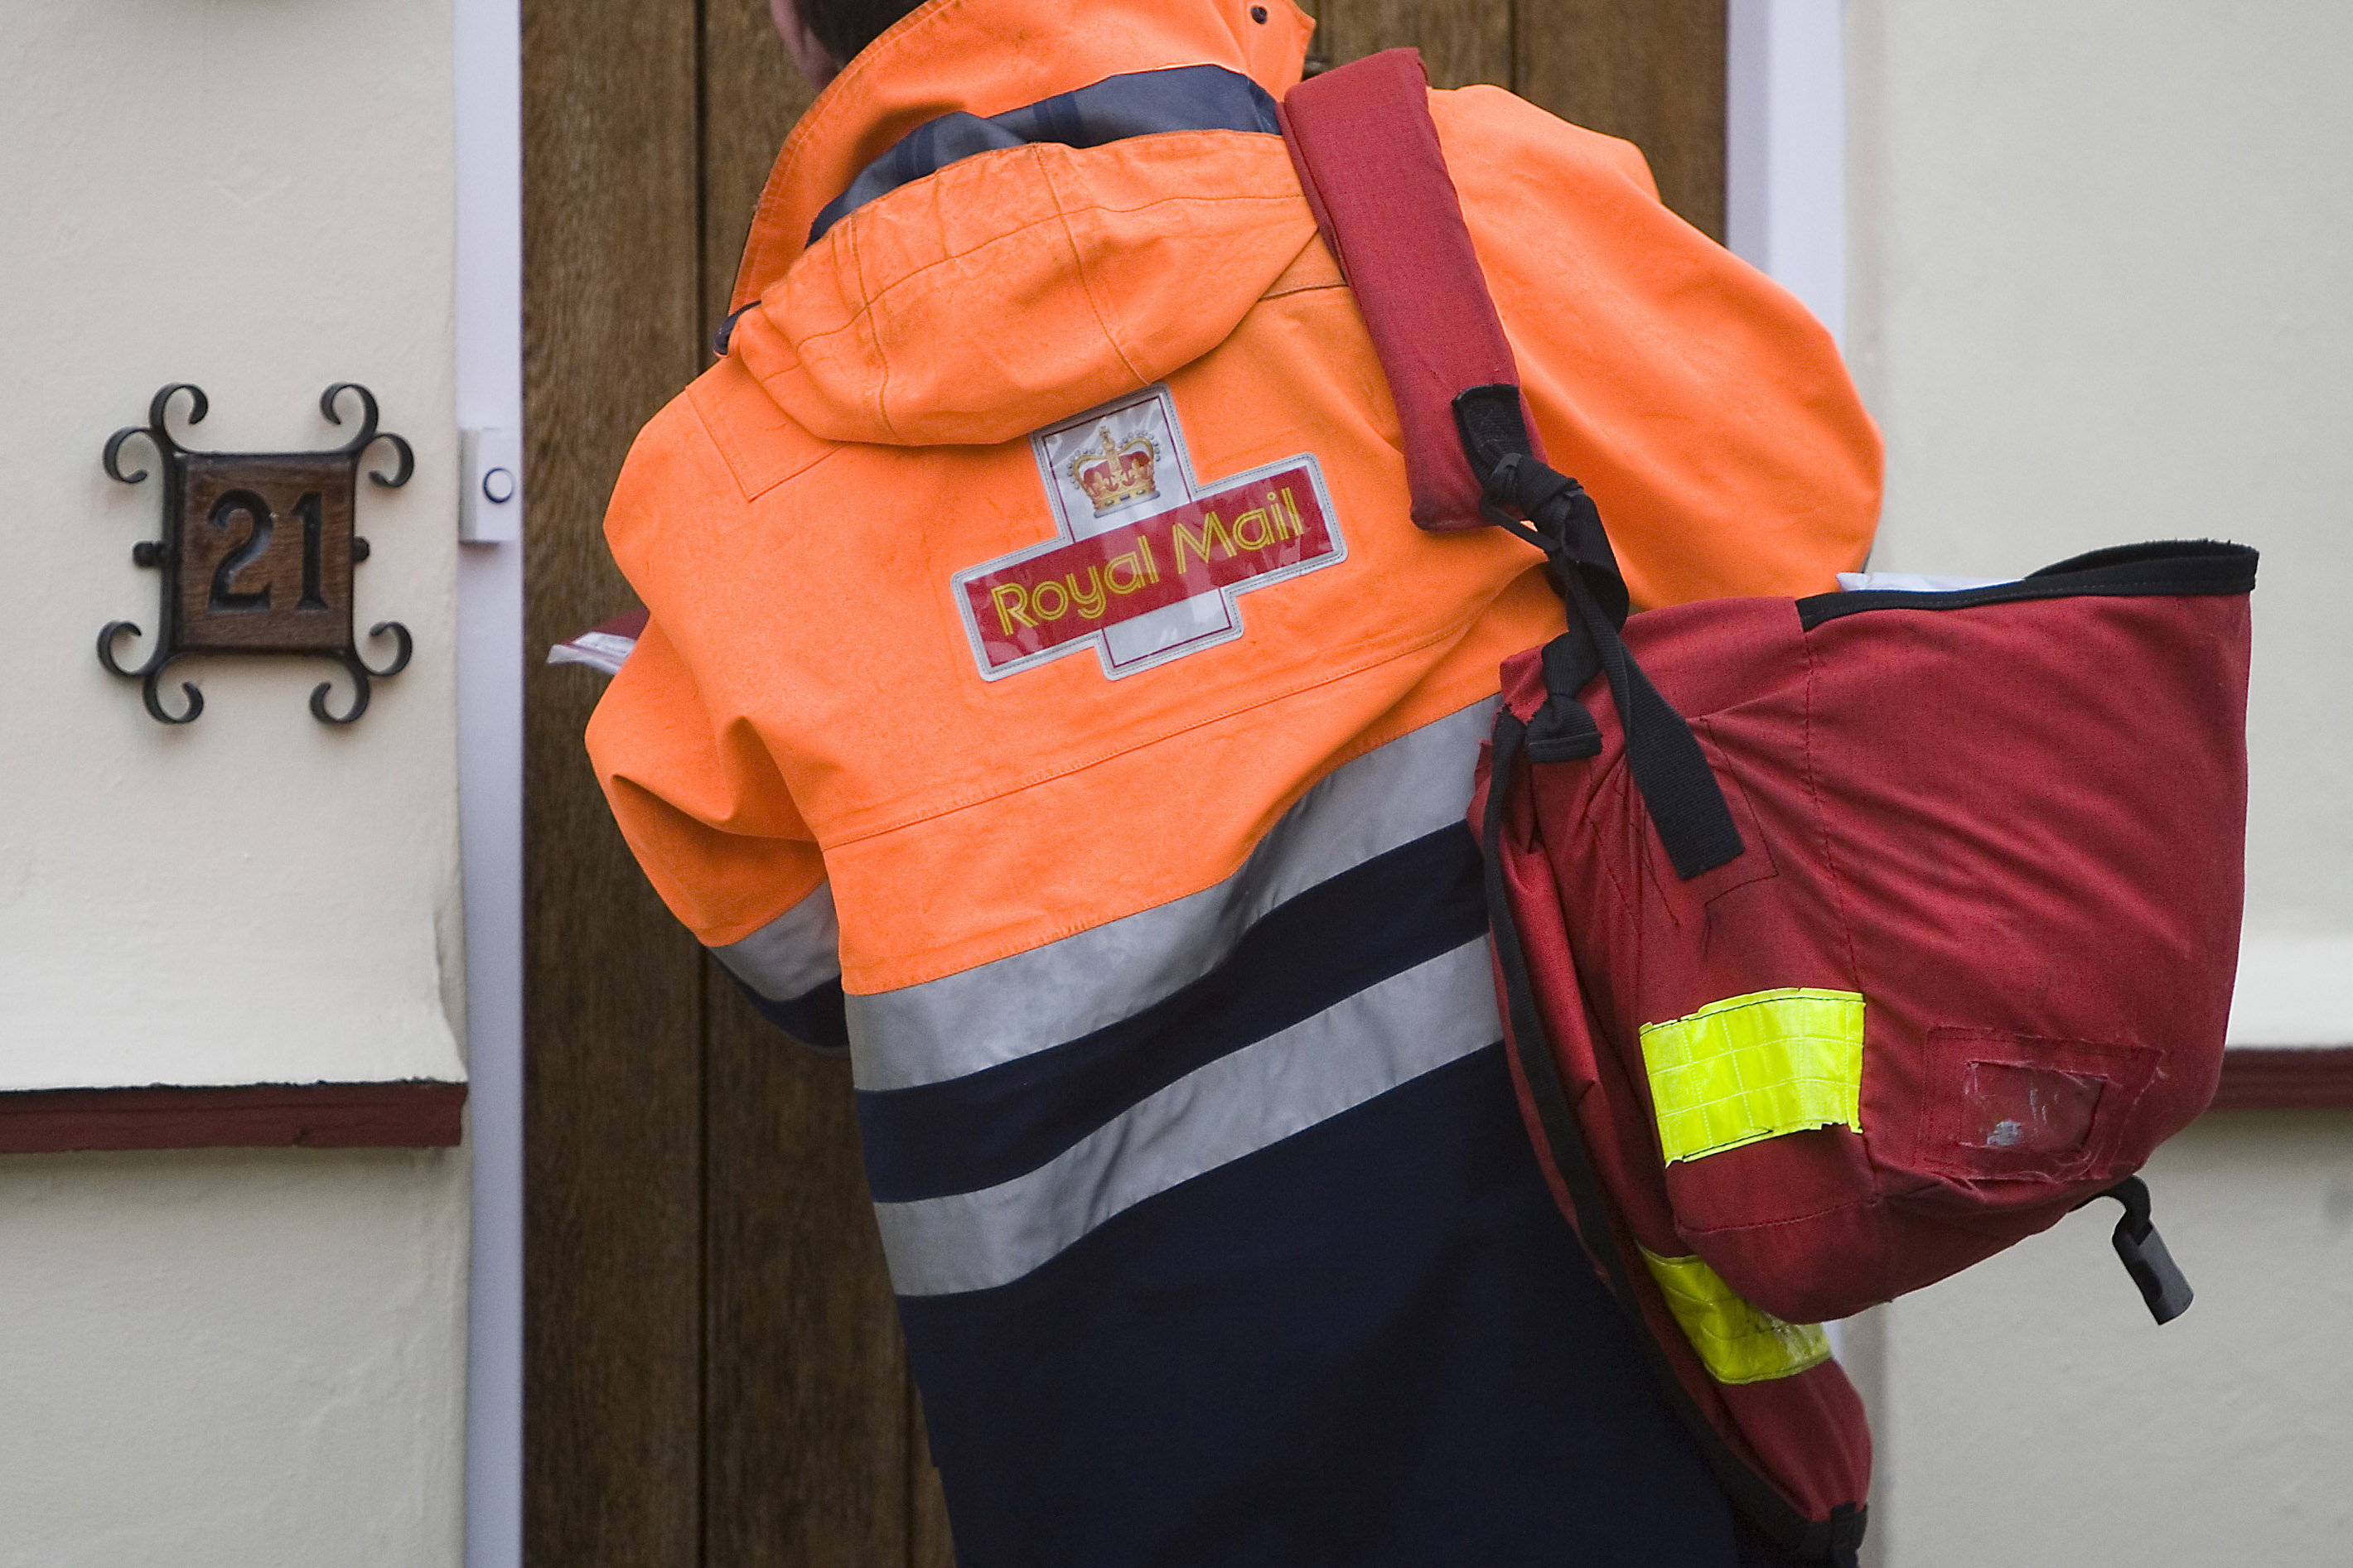 Covid has hit Royal Mail deliveries in several locations